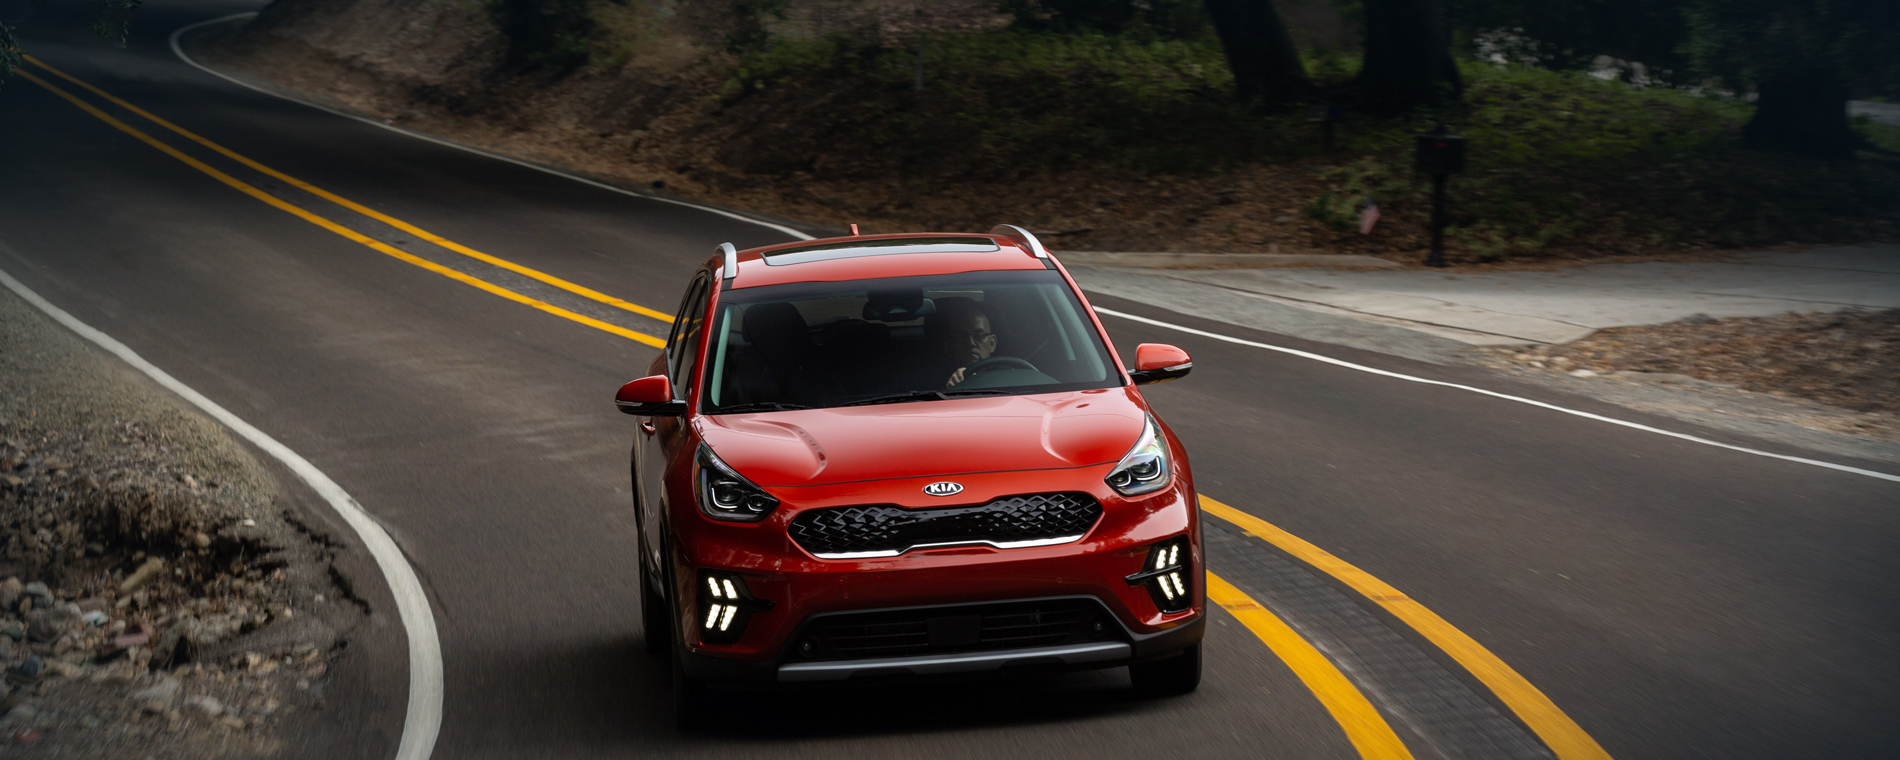 Carriage Kia Woodstock >> 2020 Niro | Kia Accessory Guide | Carriage Kia of Woodstock